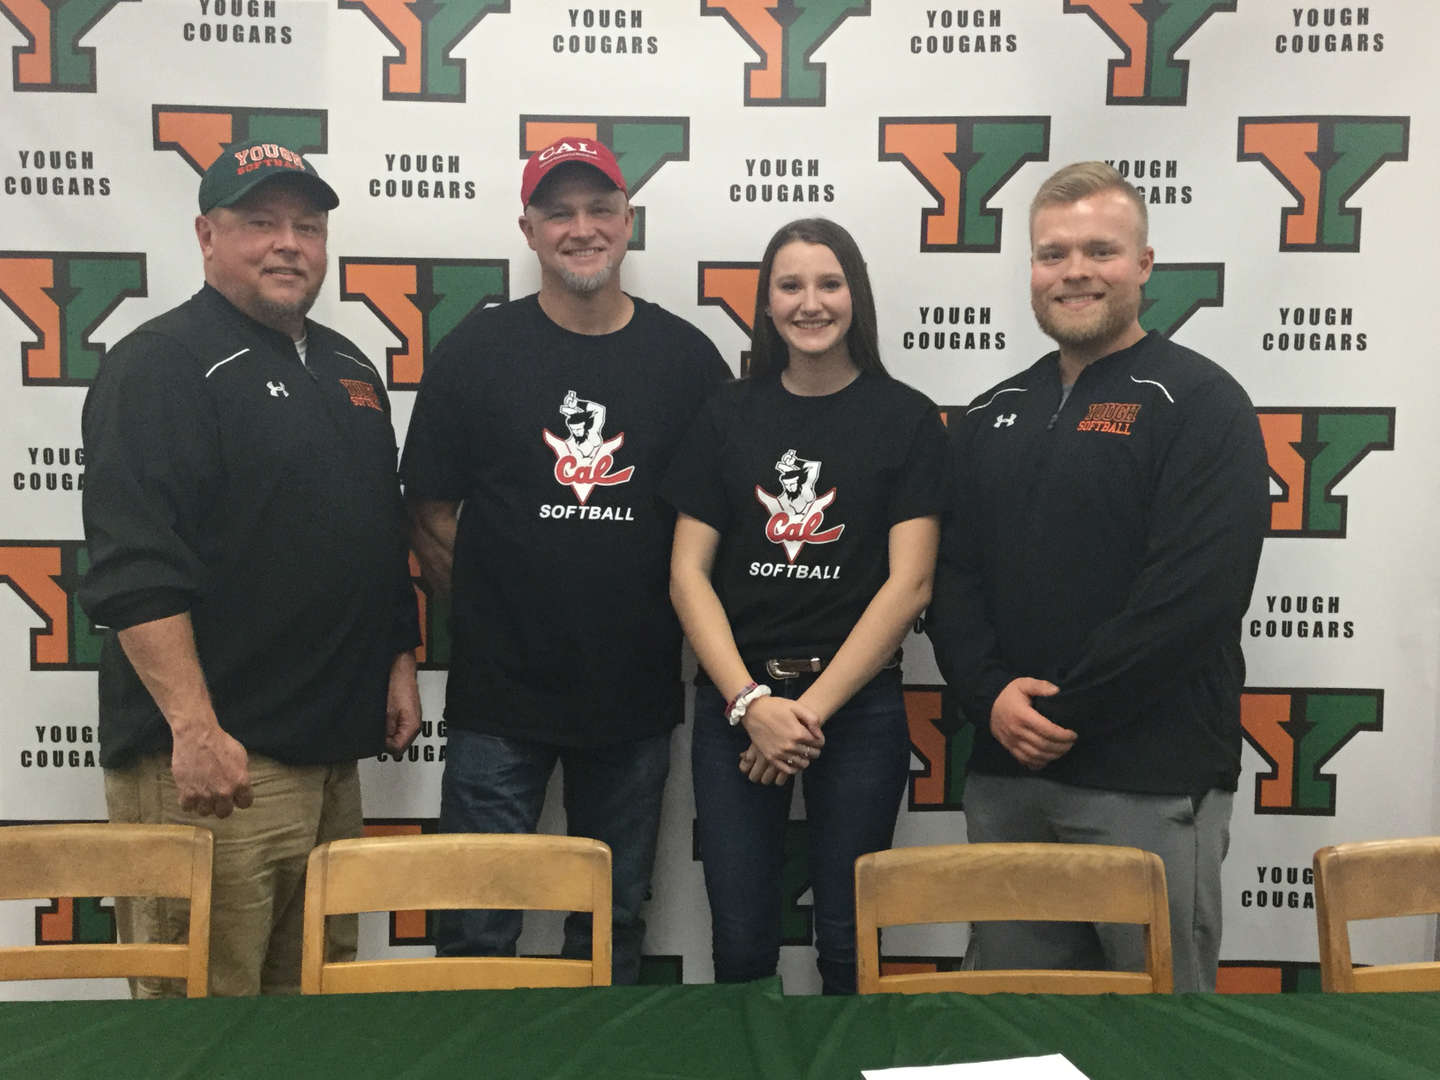 Kierra after signing her Letter of Intent to attend California University of PA.  She is with her coaches from L-R:  Dutch Harvey, Keith Waywood, Kierra and Euel Craze.